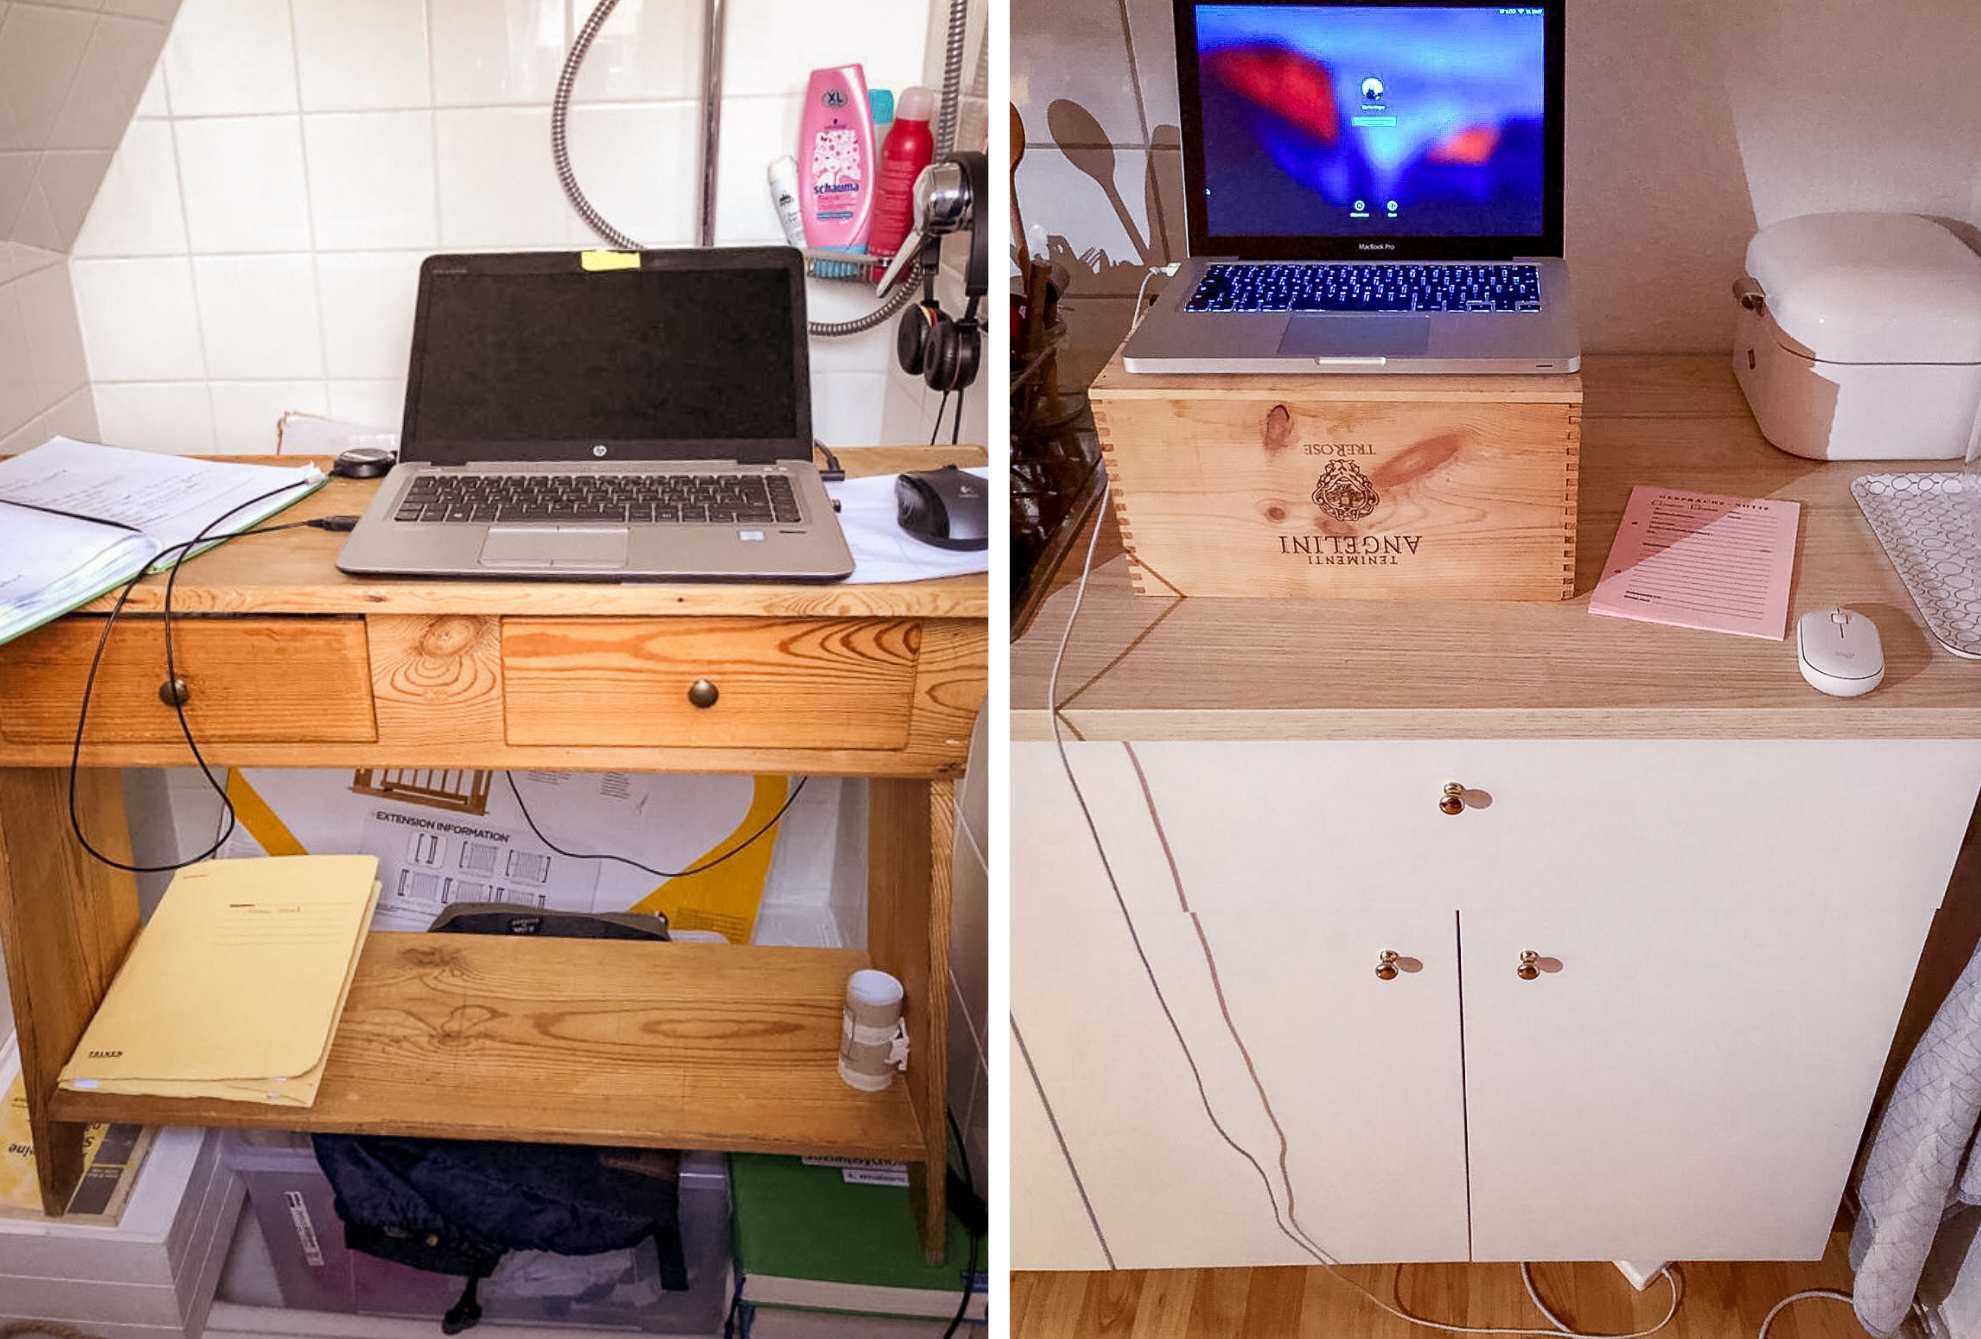 Two of my friends were very creative in setting up their home office: guest shower on the left, standing workstation by the kitchen on the right.